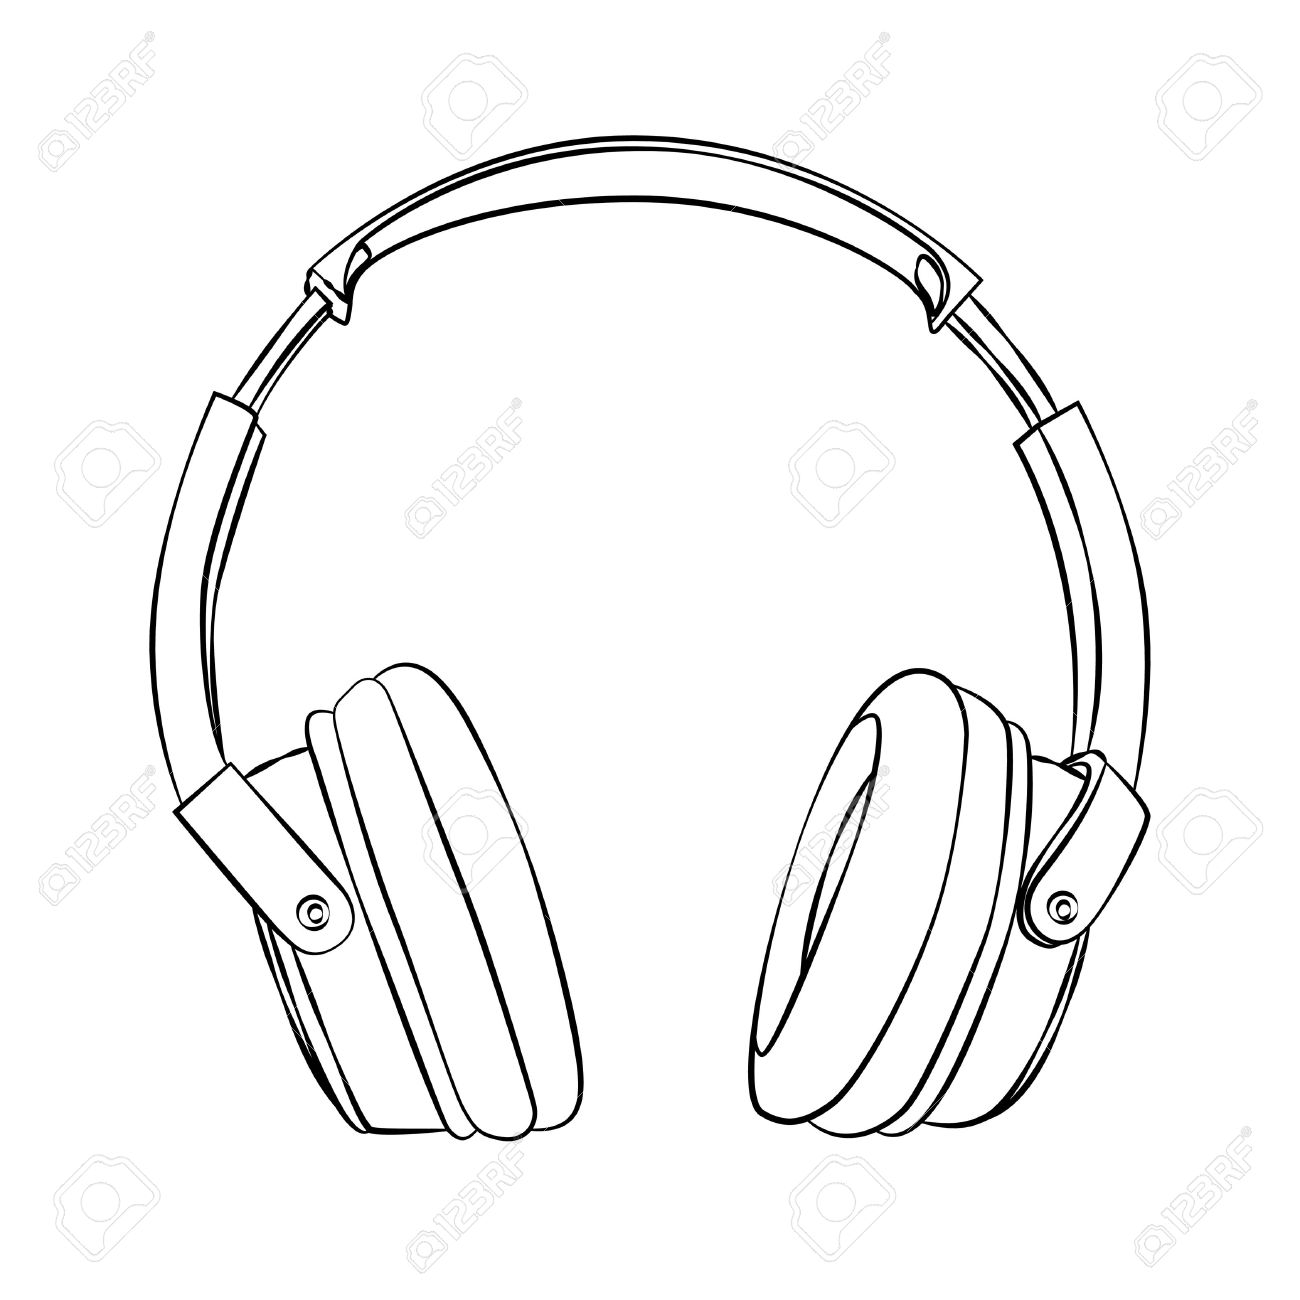 Earbuds clipart draw. Headphones drawing at getdrawings